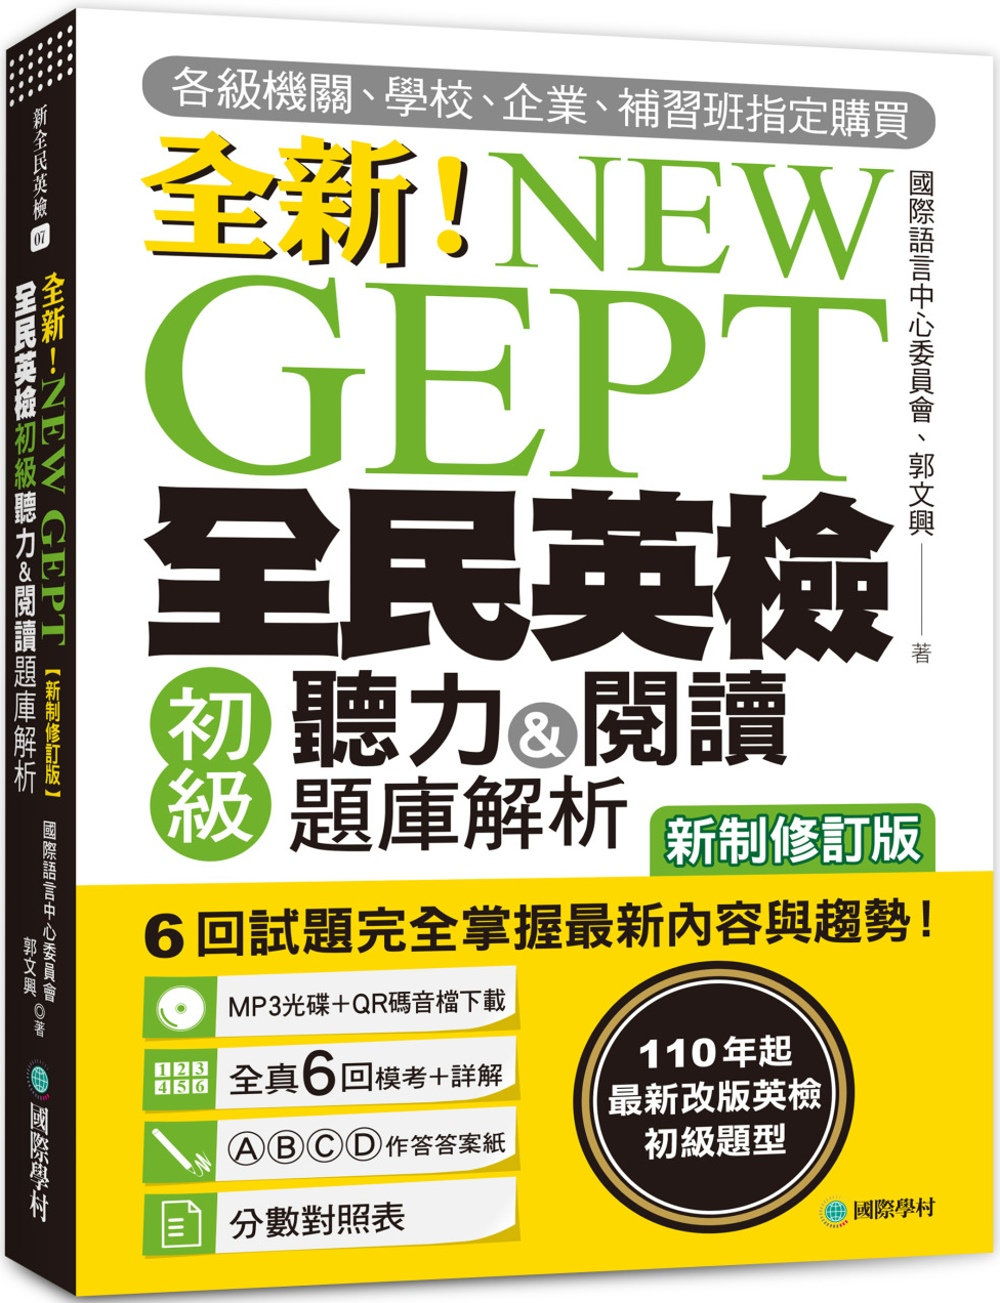 NEW GEPT...